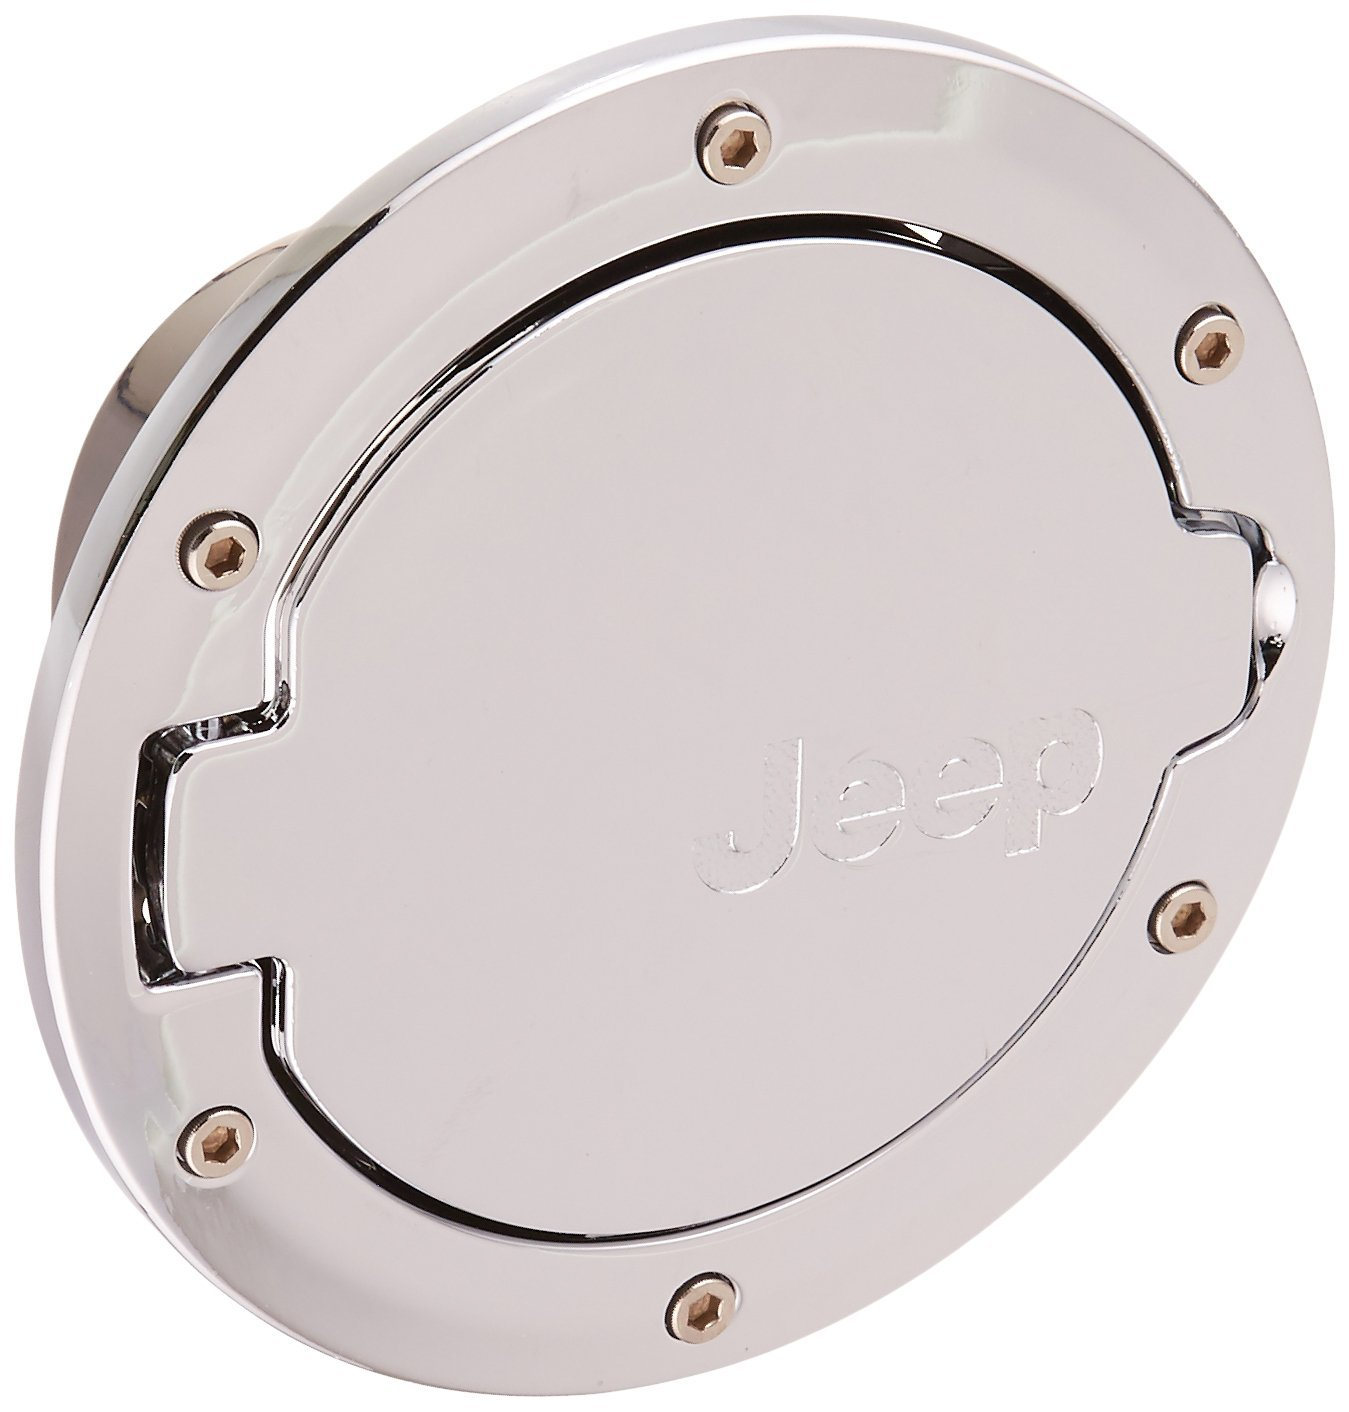 EVINIS Jeep Wrangler Silver Gas Tank Cap Cover Door Fuel Filler Door fit for 2007 - 2016 Jeep Wrangler JK & Unlimited